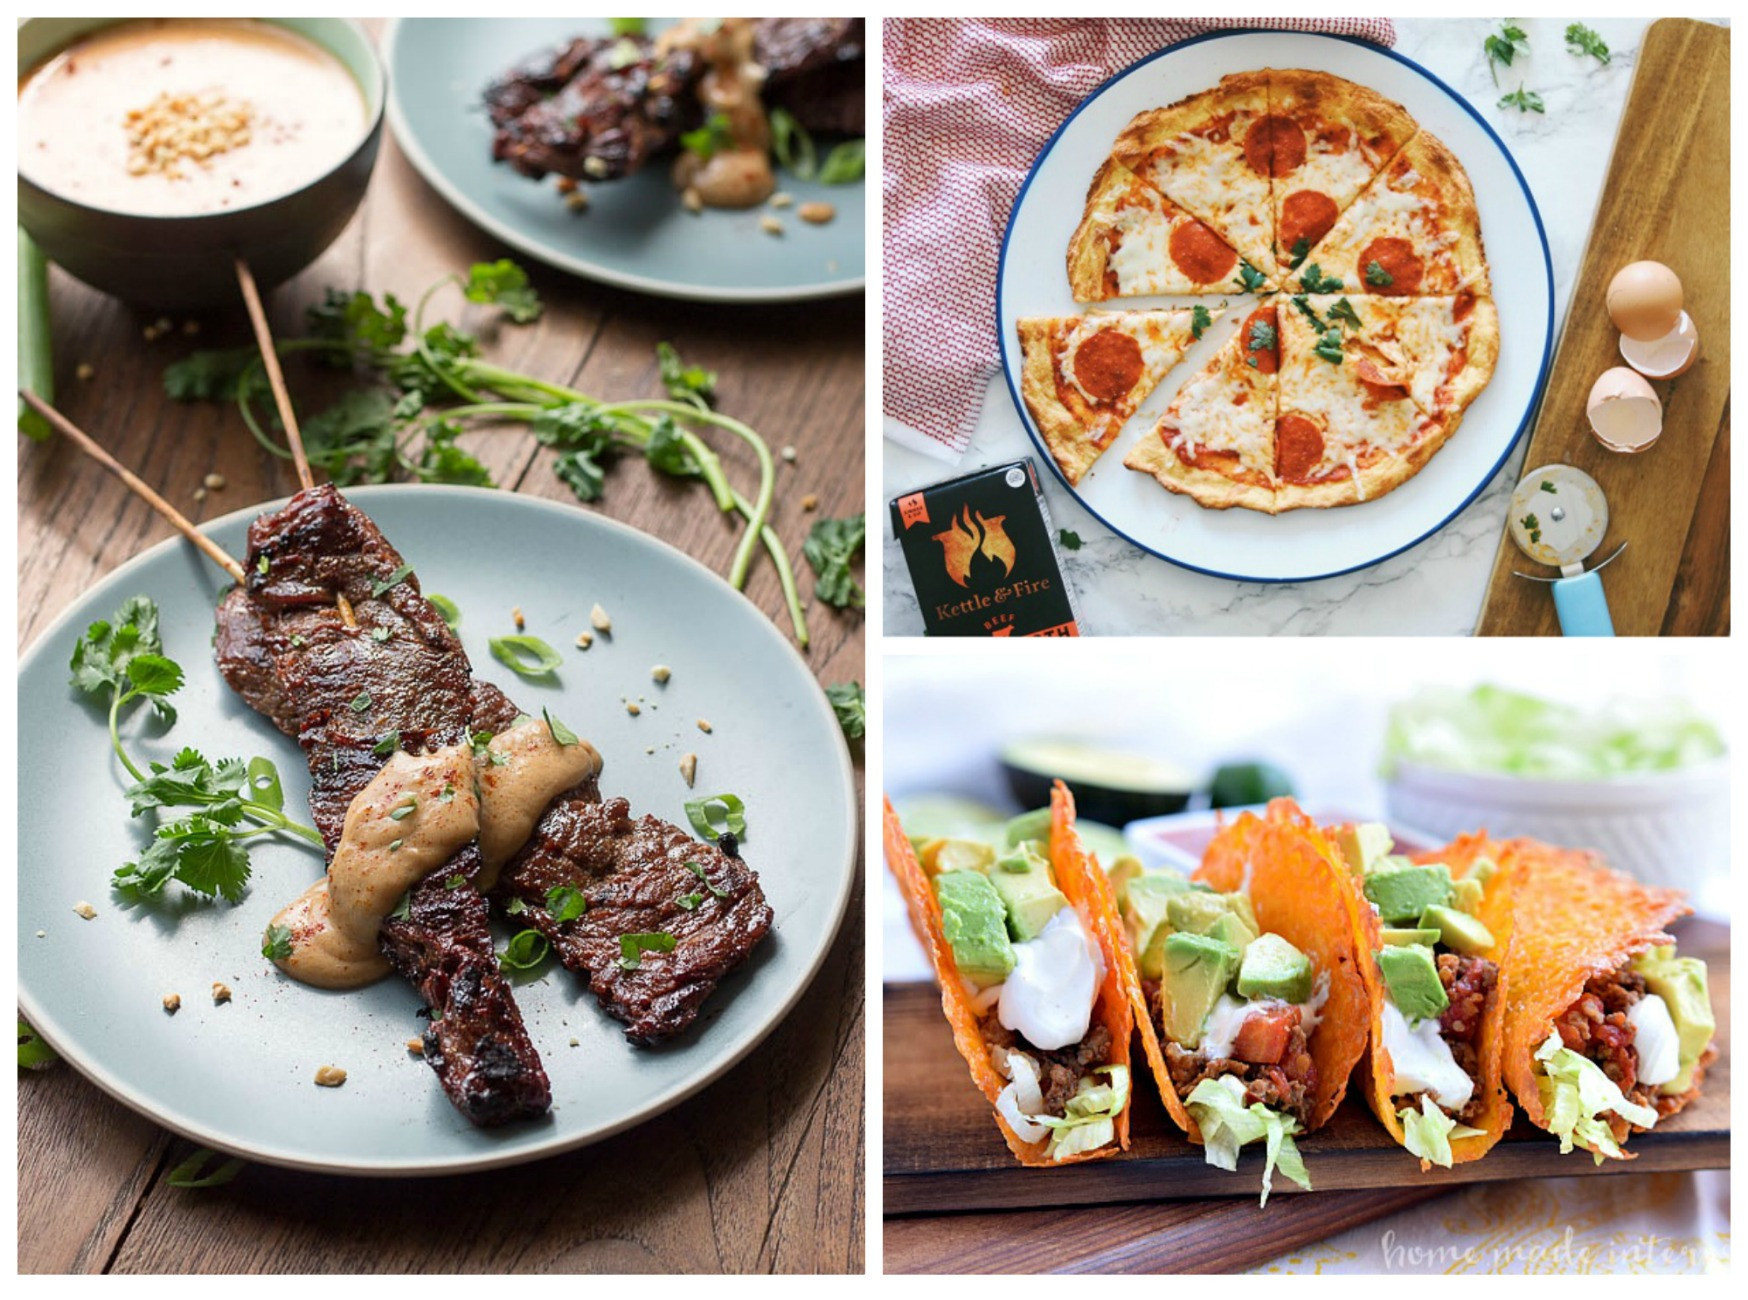 Keto Recipes For Dinner  15 Easy Keto Dinner Recipes That ll Turn You into a Fat